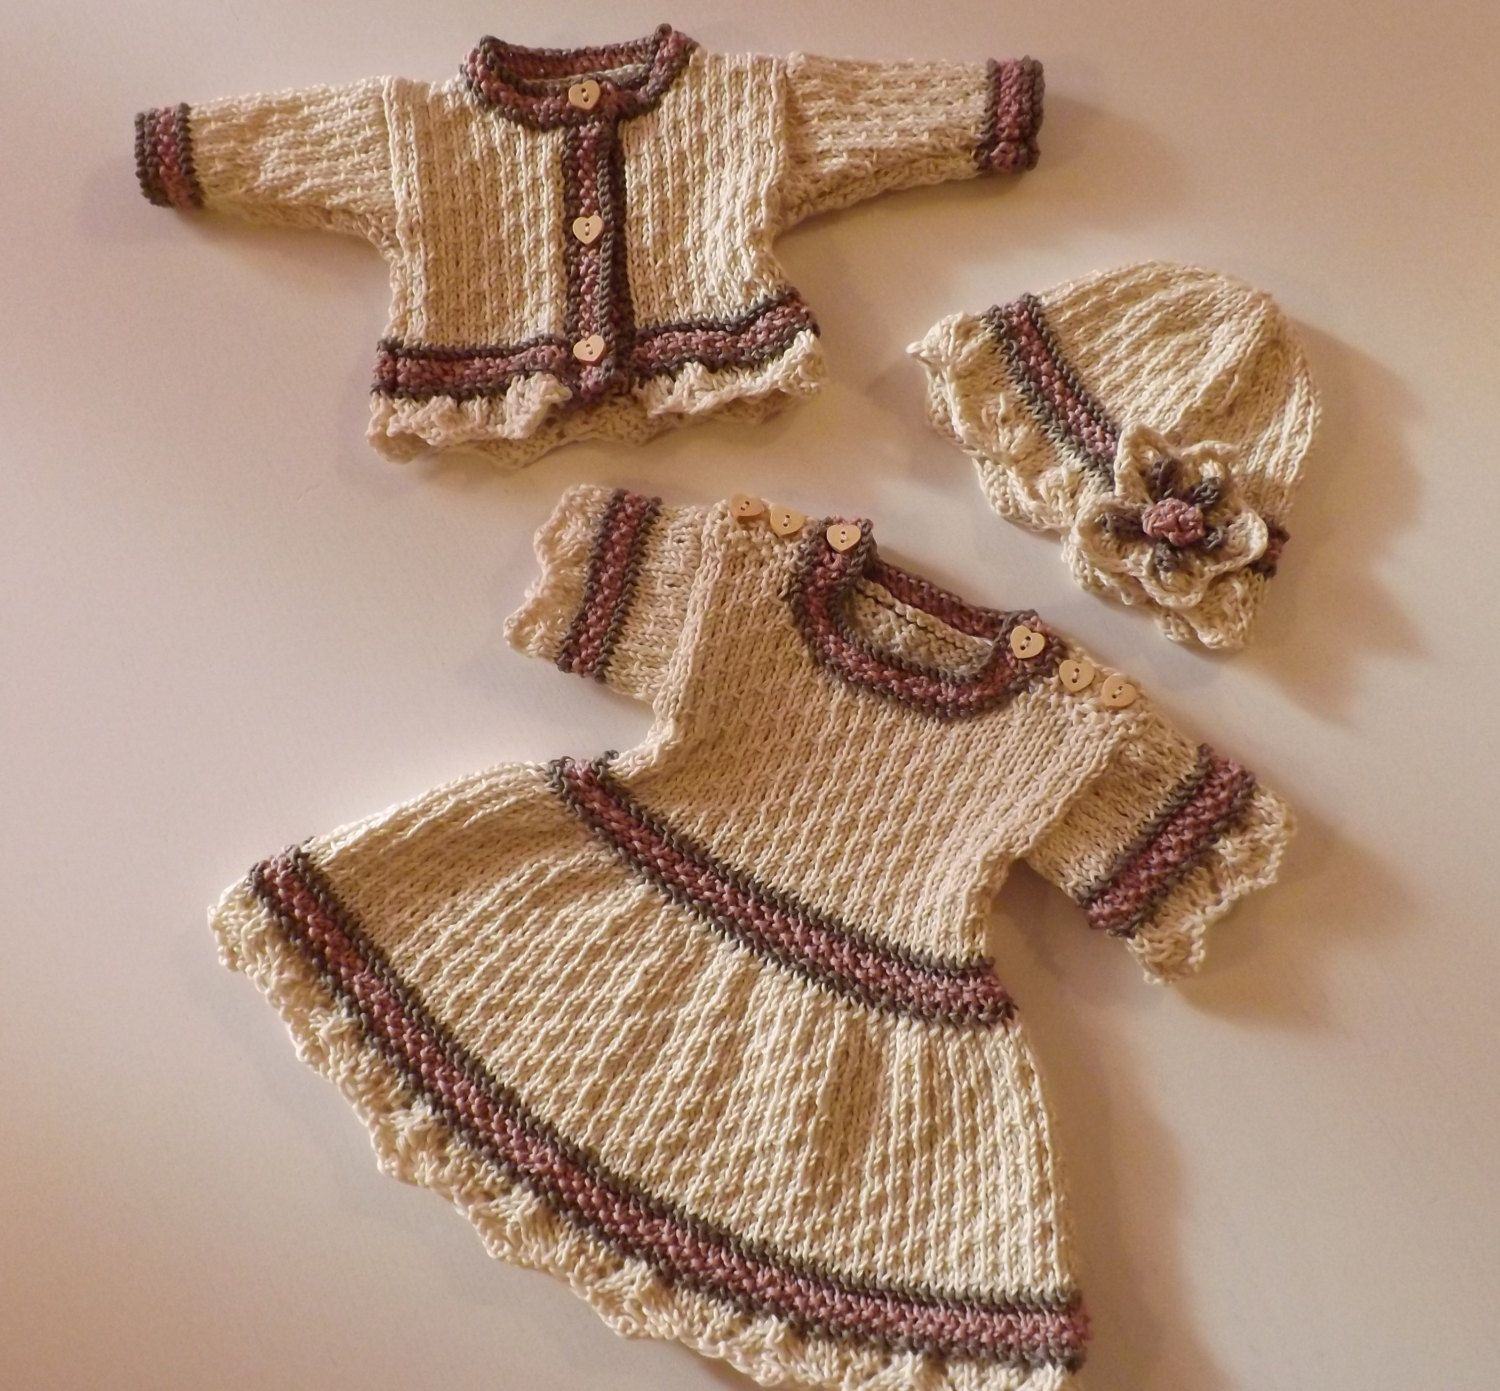 Baby gift knitting pattern knit for babys first christmas baby baby gift knitting pattern knit for babys first christmas baby shower pdf knitted baby dress hat and cardigan vintage tyle bankloansurffo Choice Image